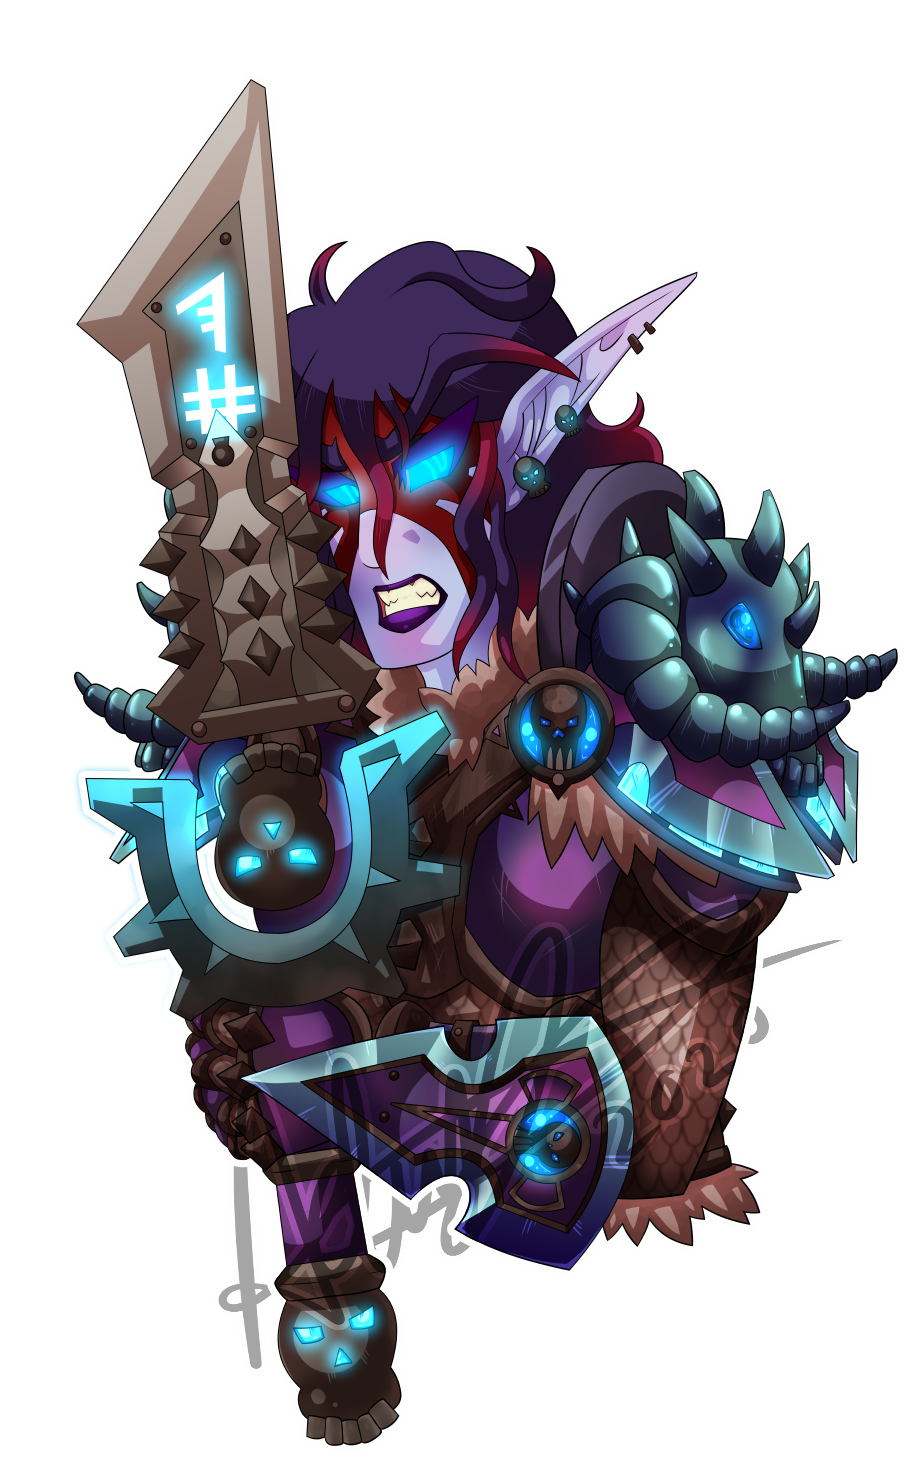 Most recent image: Night Elf Deathknight